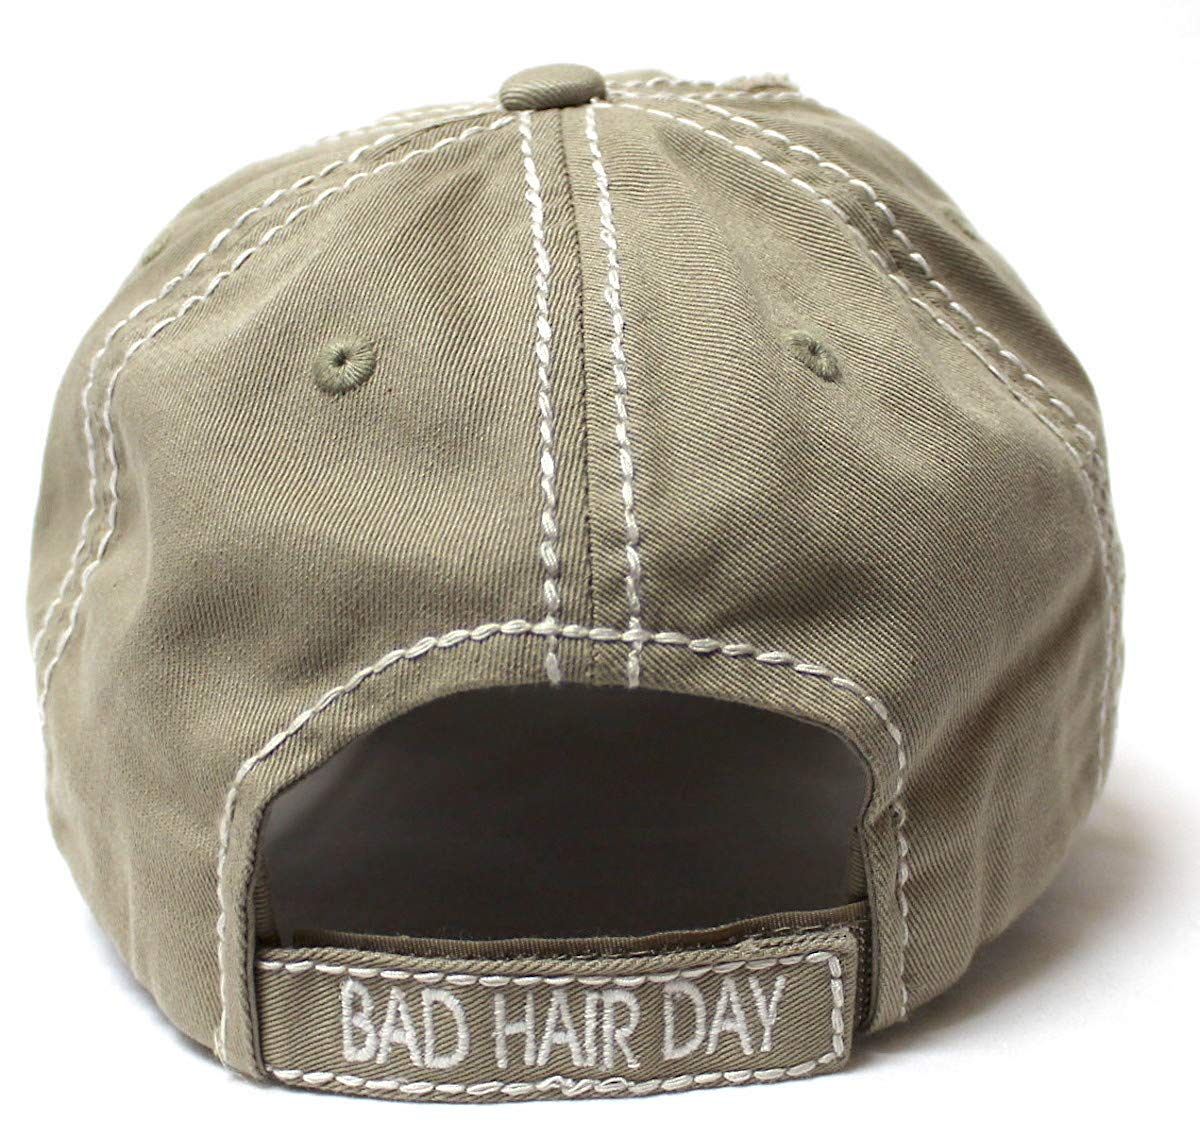 CAPS 'N VINTAGE Bad Hair Day Stitch Embroidery Distressed Baseball Hat, Khaki - Caps 'N Vintage